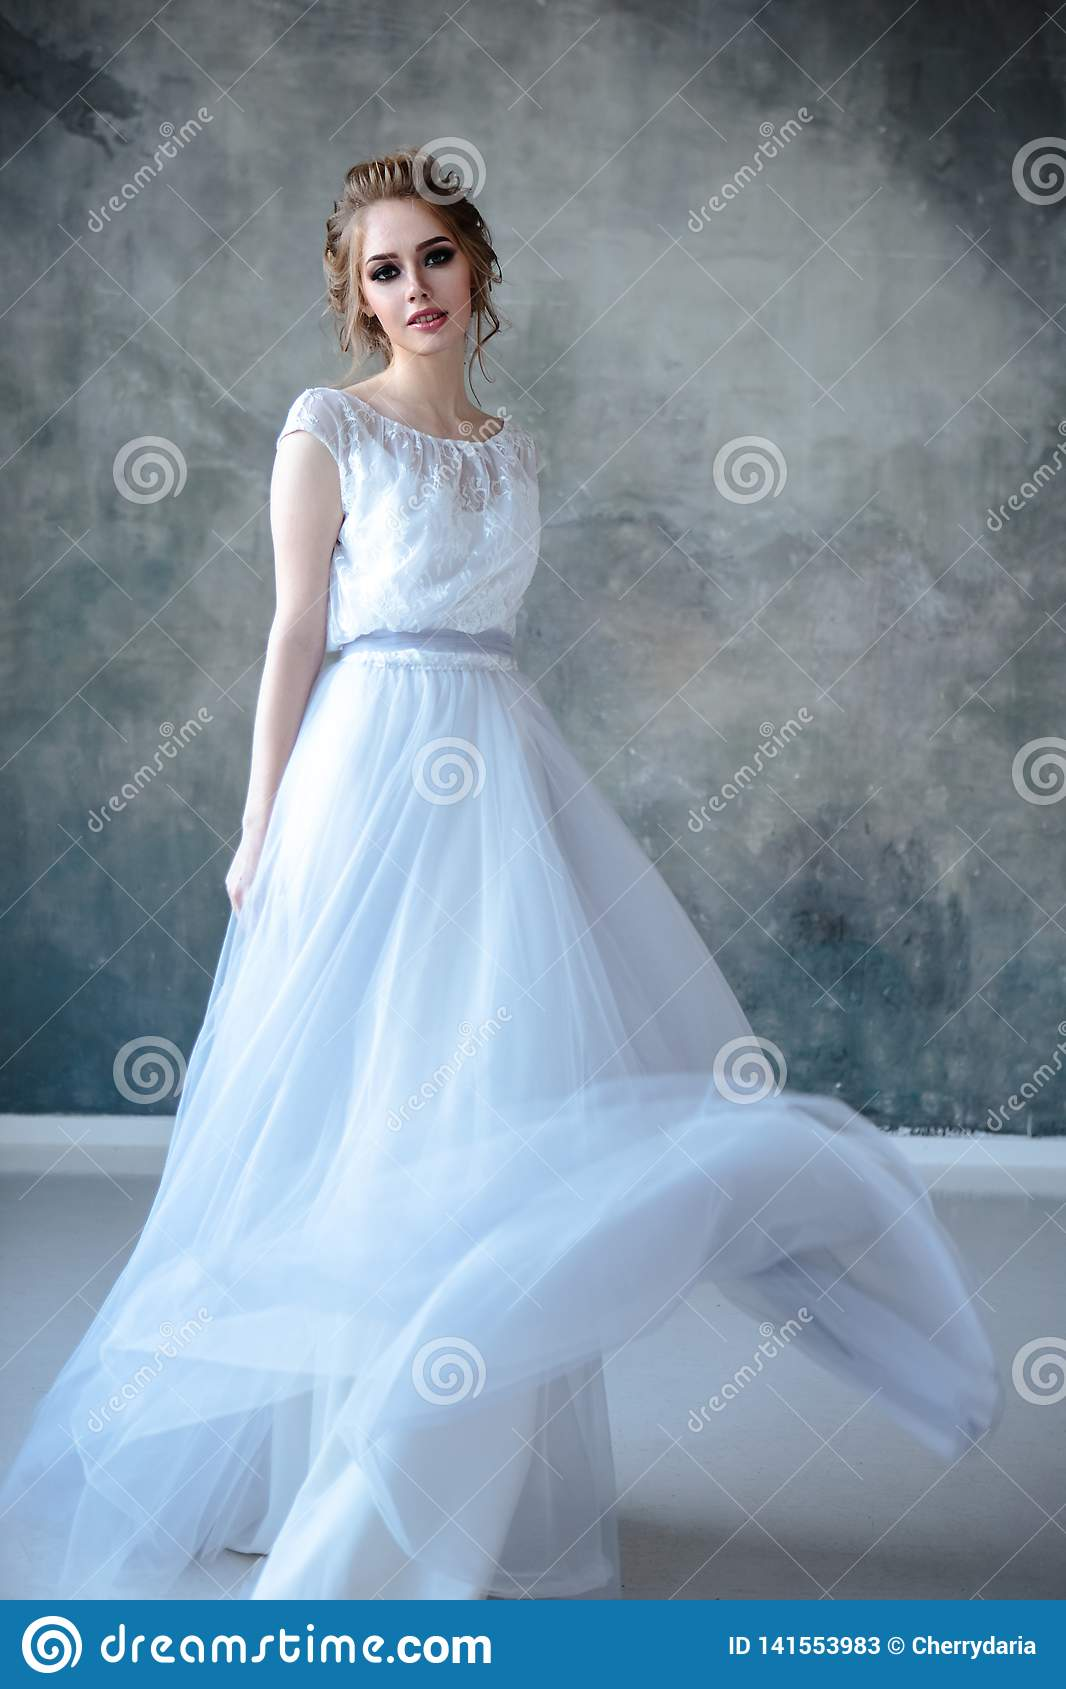 Bride Blonde Woman In A Modern Color Wedding Dress With Elegant